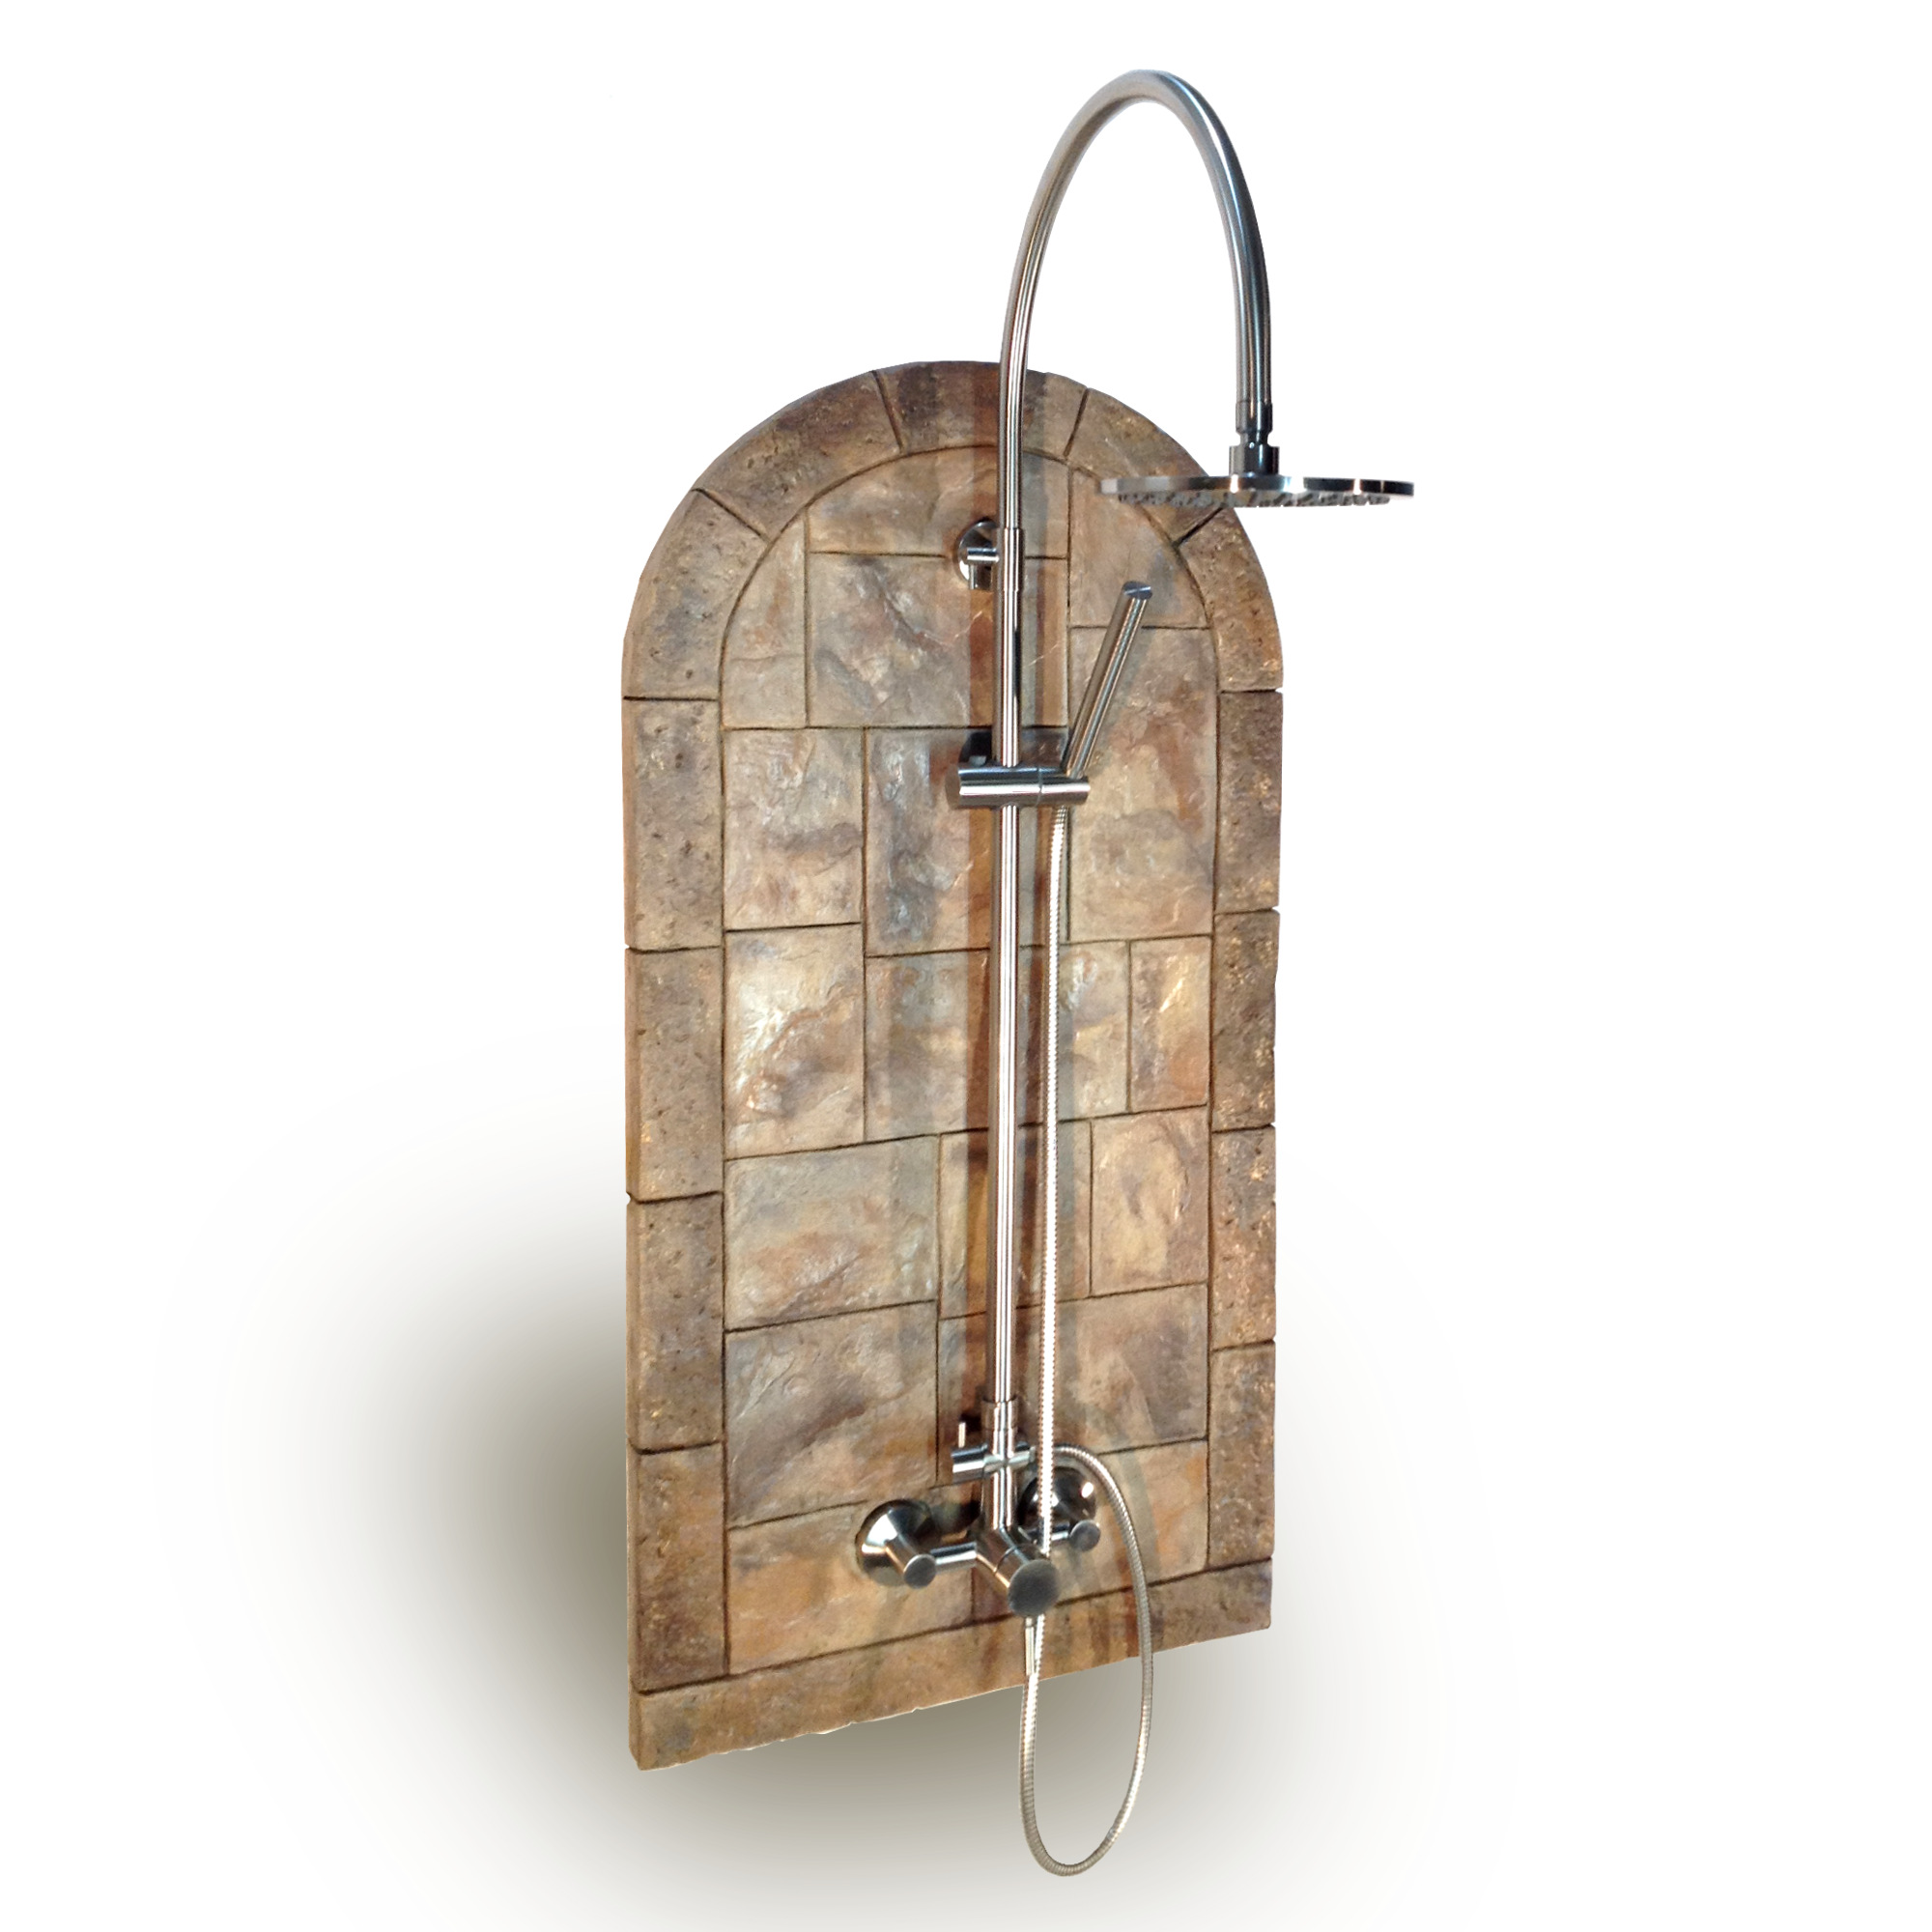 Rustic Outdoor Showers Fixtures Related Keywords Suggestions Rustic O